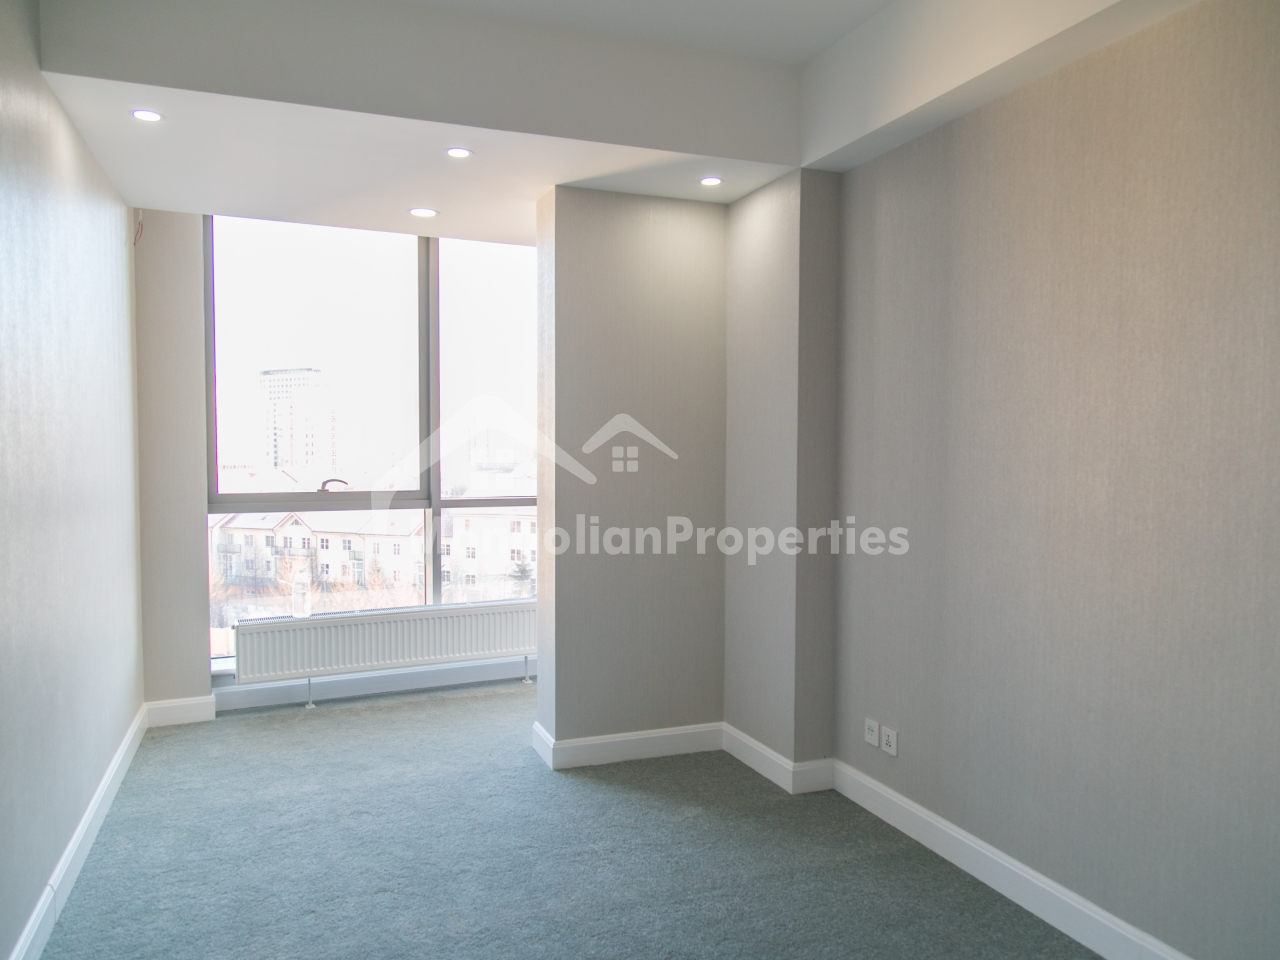 FOR RENT: GREAT LOCATION, BRAND NEW 2 BEDROOM APARTMENT IN OLYMPIC RESIDENCE